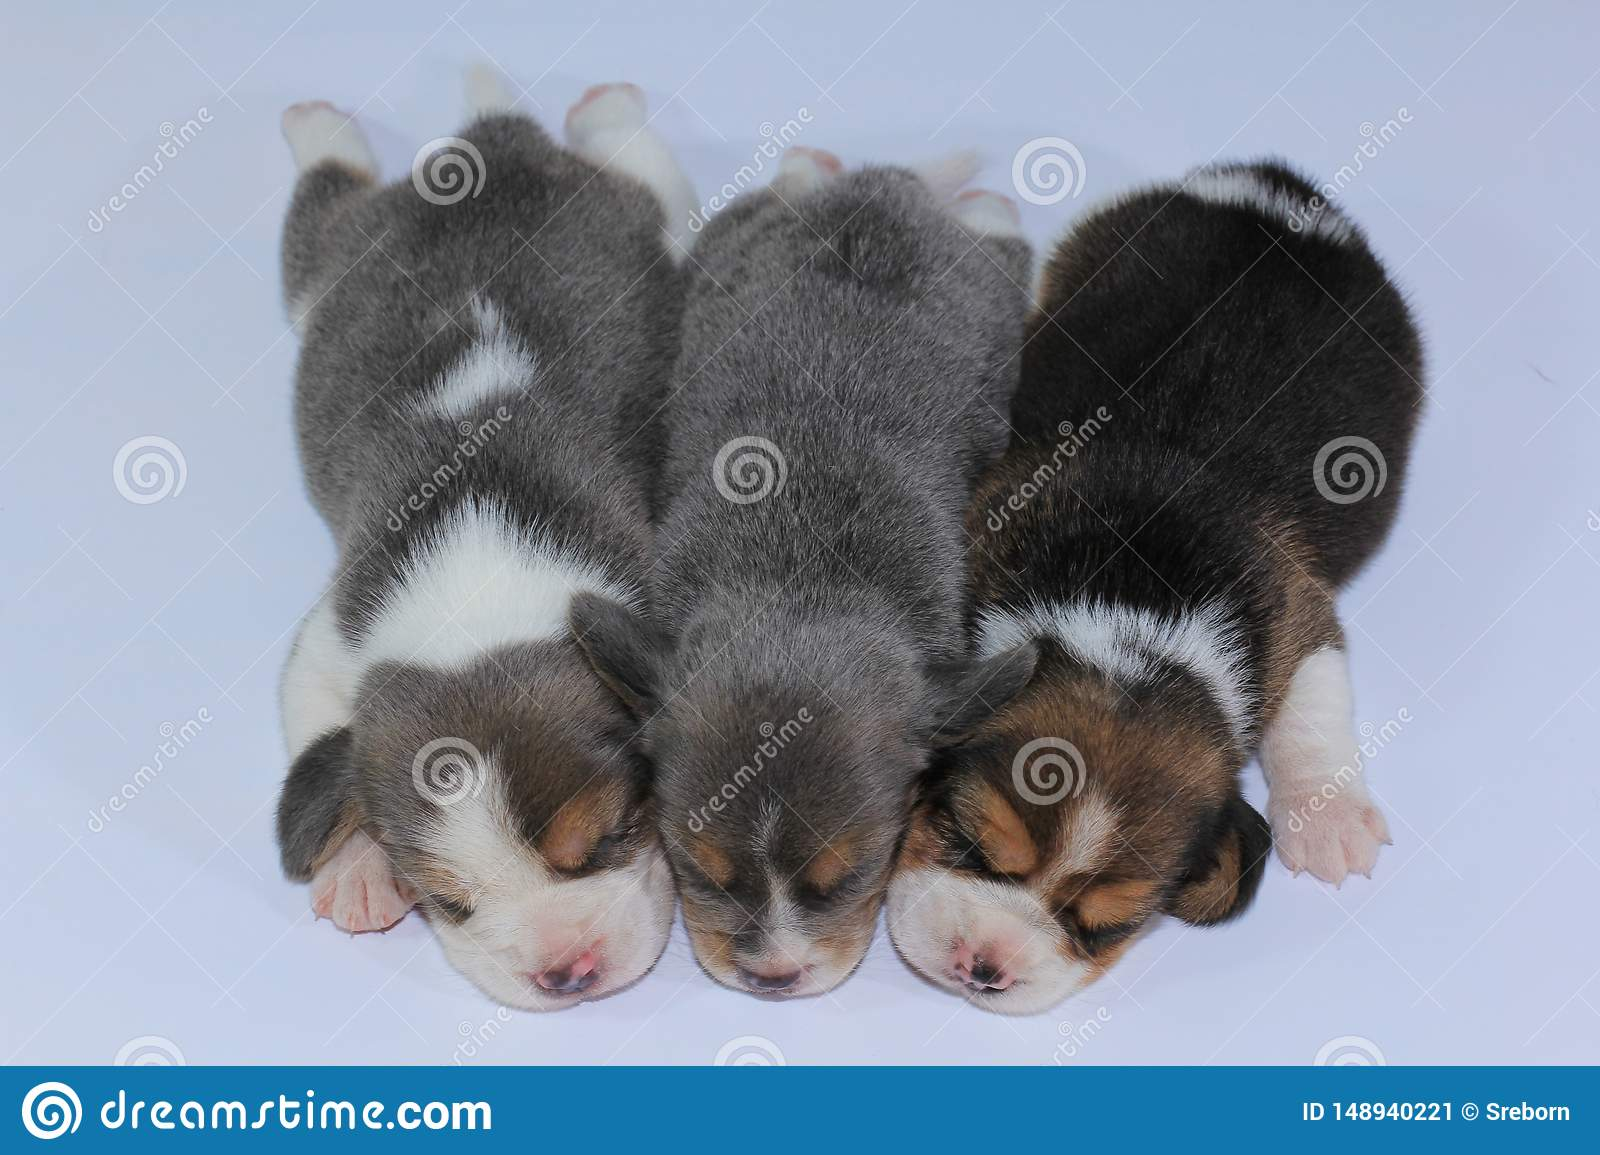 Silver Tri Color Beagle Puppy Is Sleeping And Looking In First Time Stock Image Image Of Horizontal Living 148940221